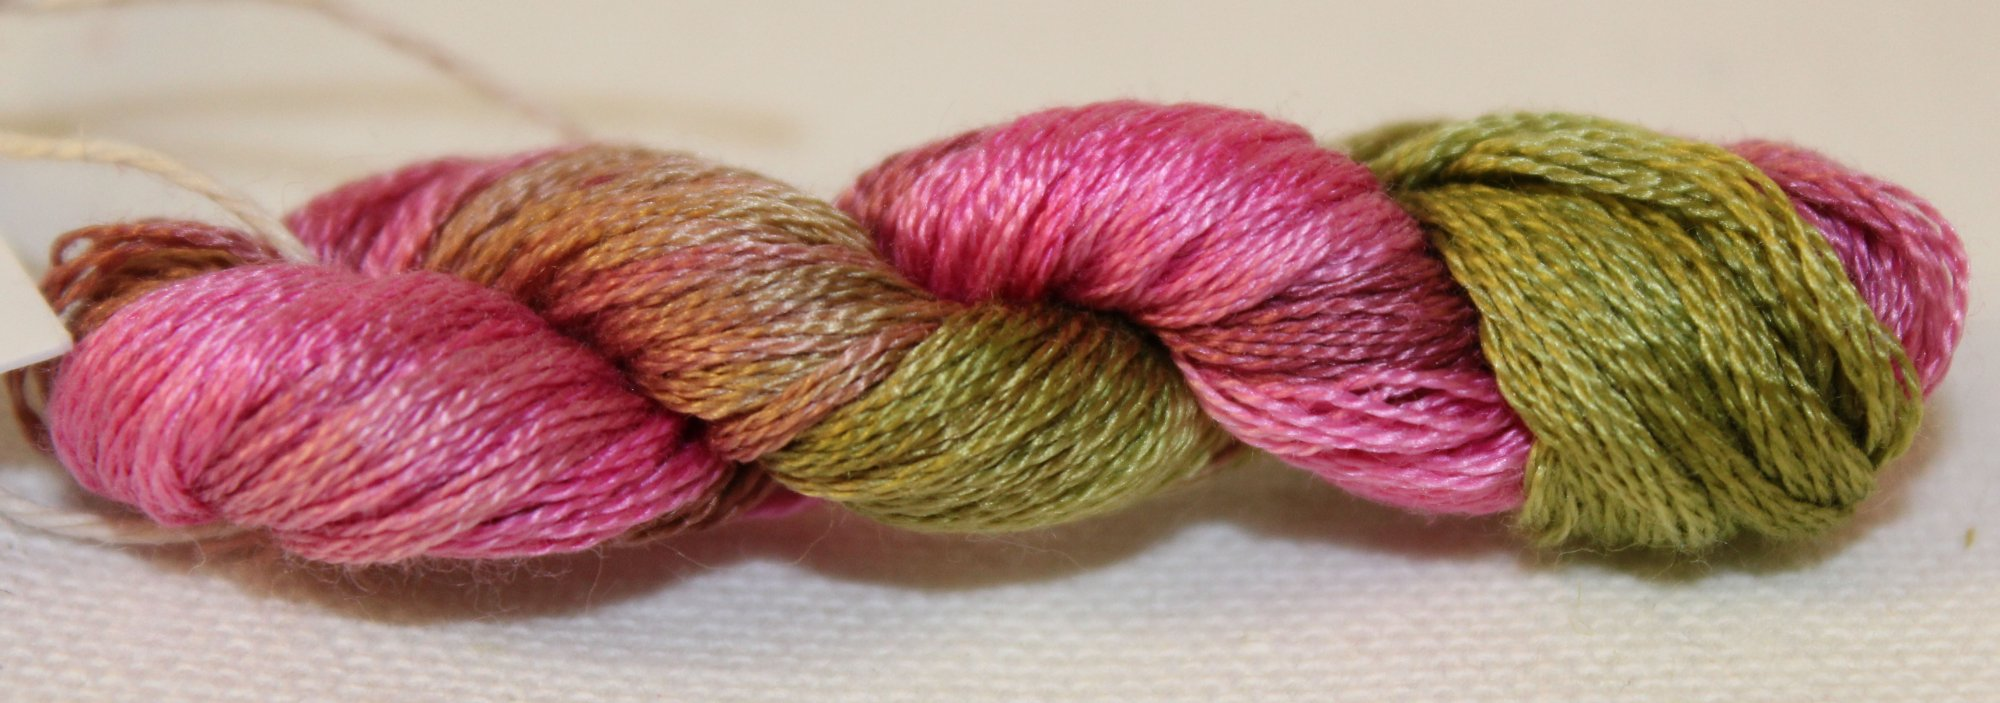 Briar Patch- Hand-Dyed Embroidery Floss